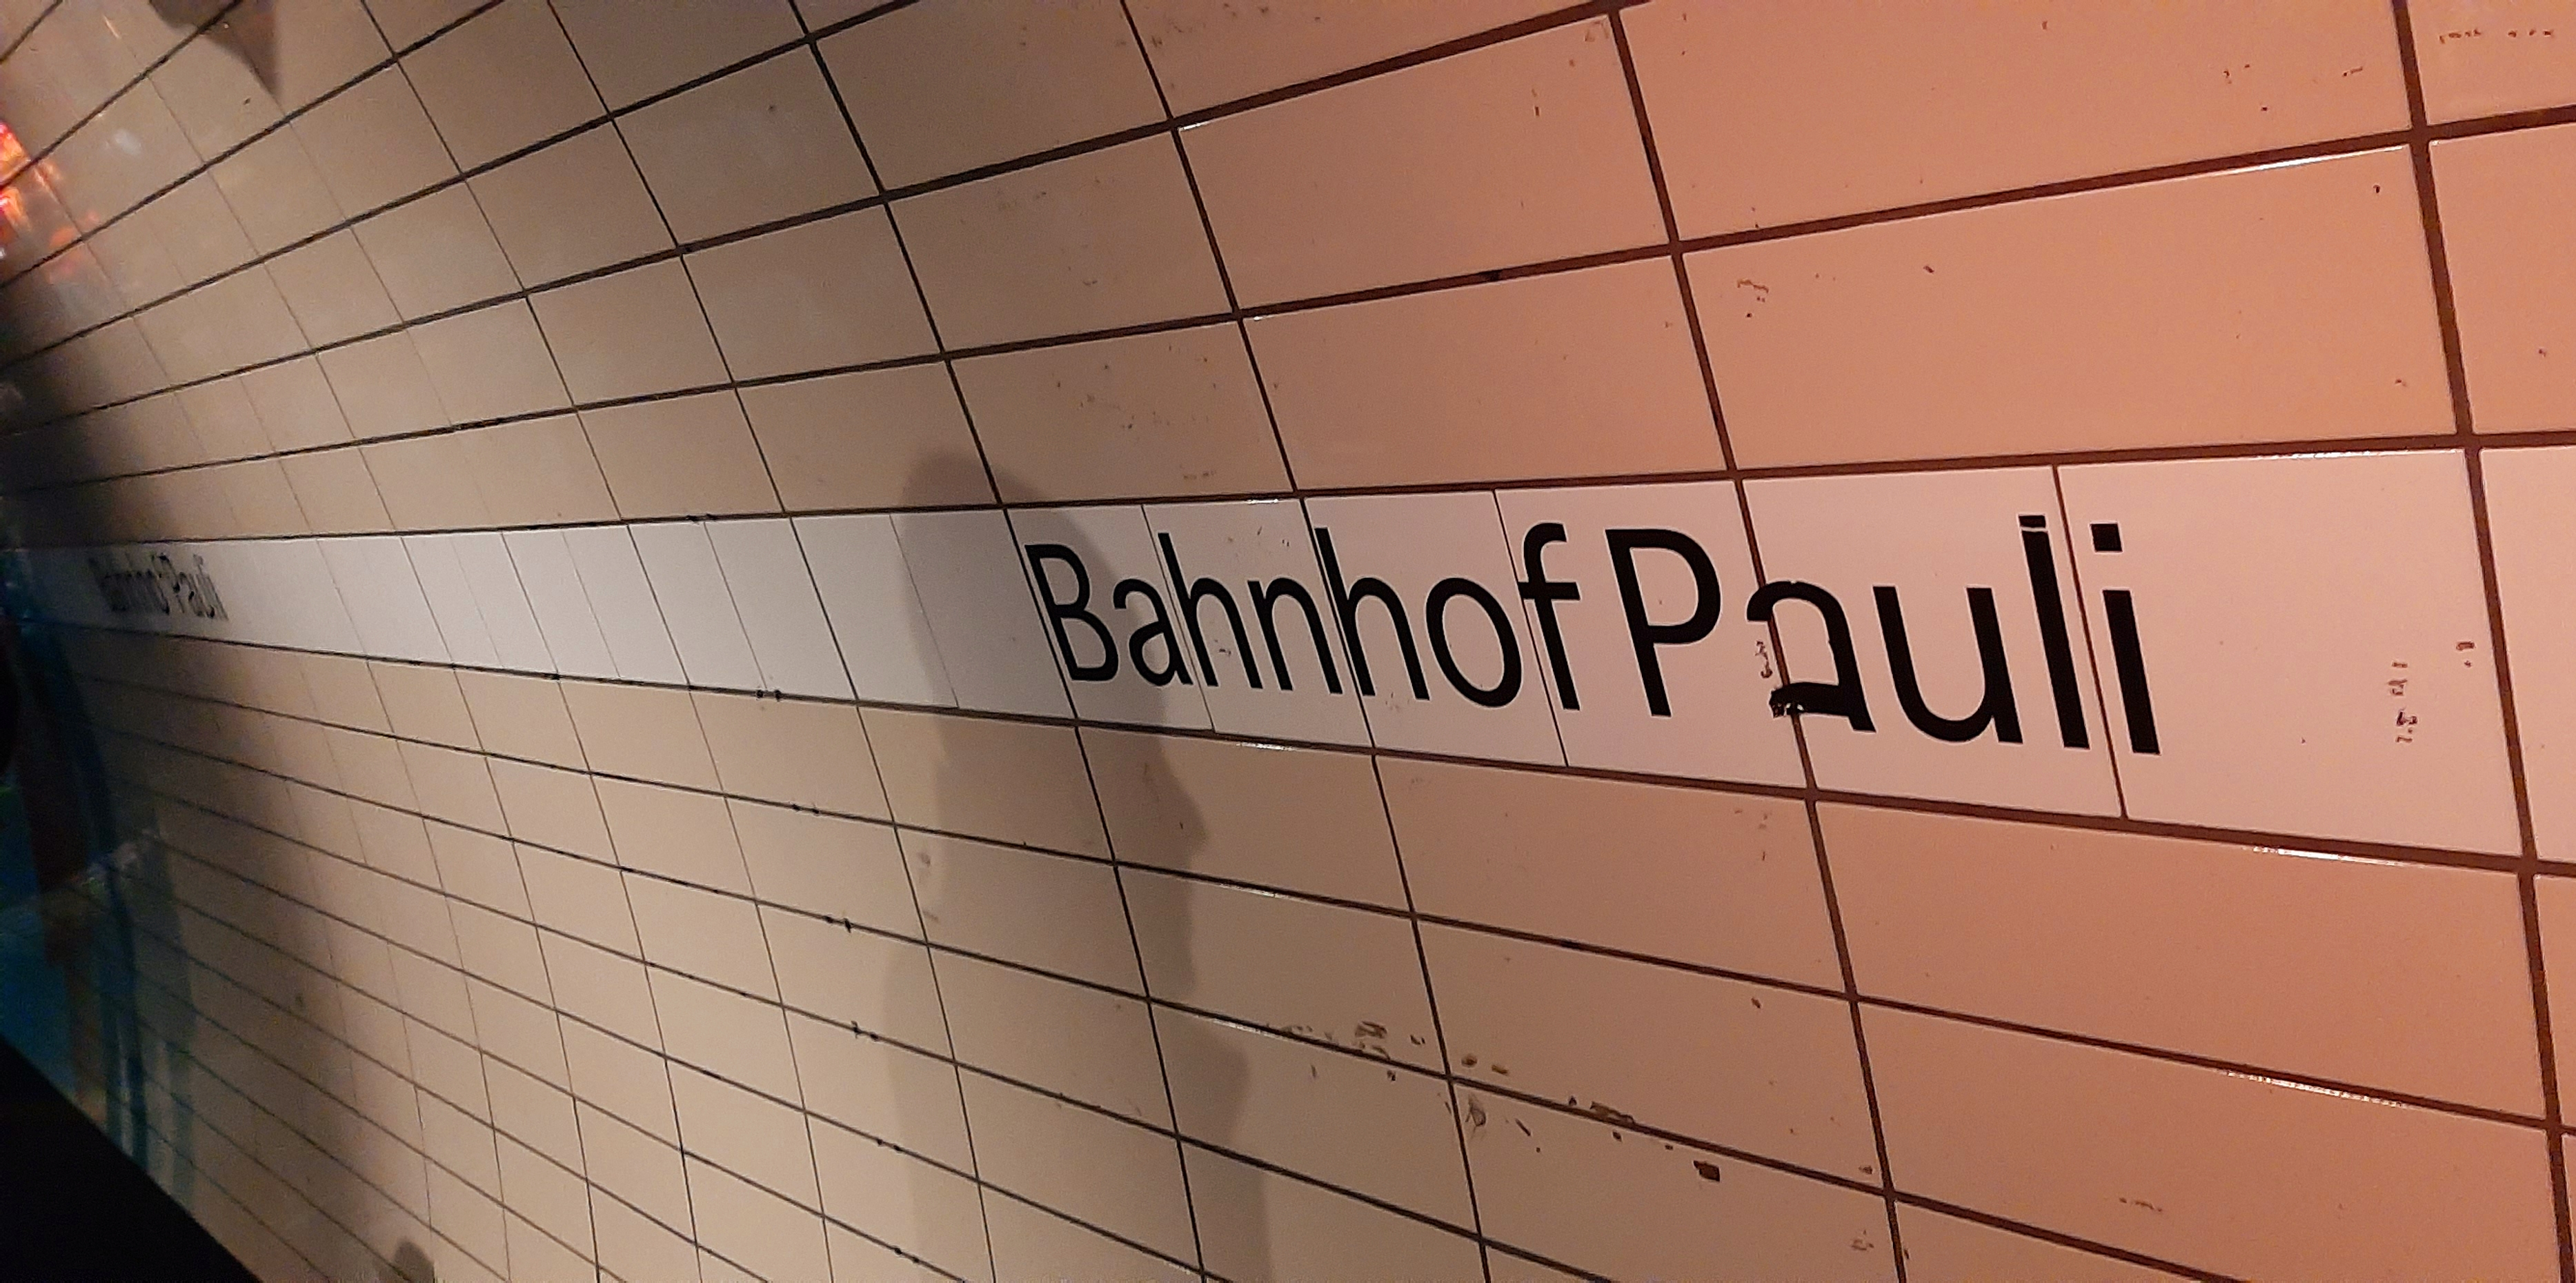 Bahnhof Pauli, Club, St. Pauli, Open Club Day